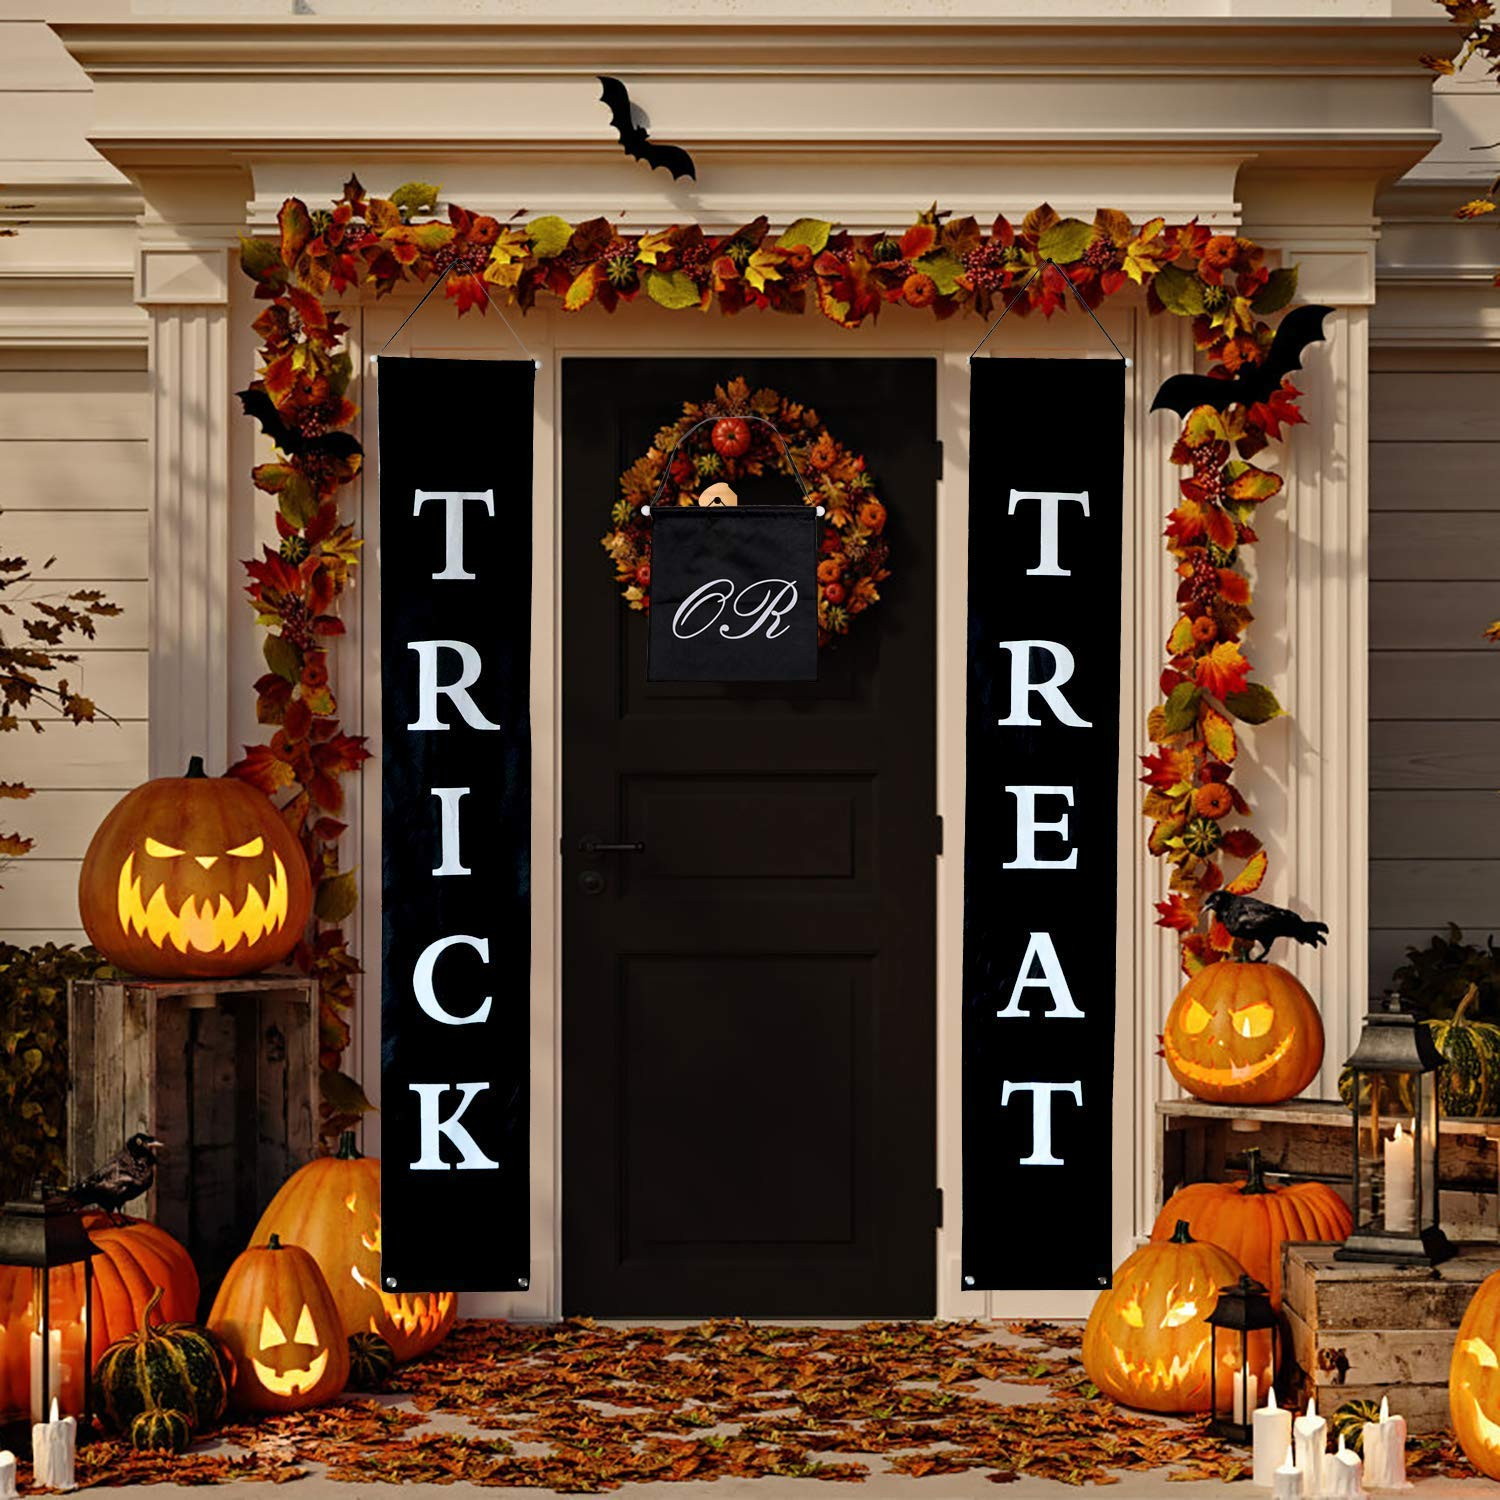 Wizpower Trick or Treat Halloween Banner, Halloween Outdoor Hanging Decoration Sign for Home Office Porch Front Door Halloween Decorations Supplies